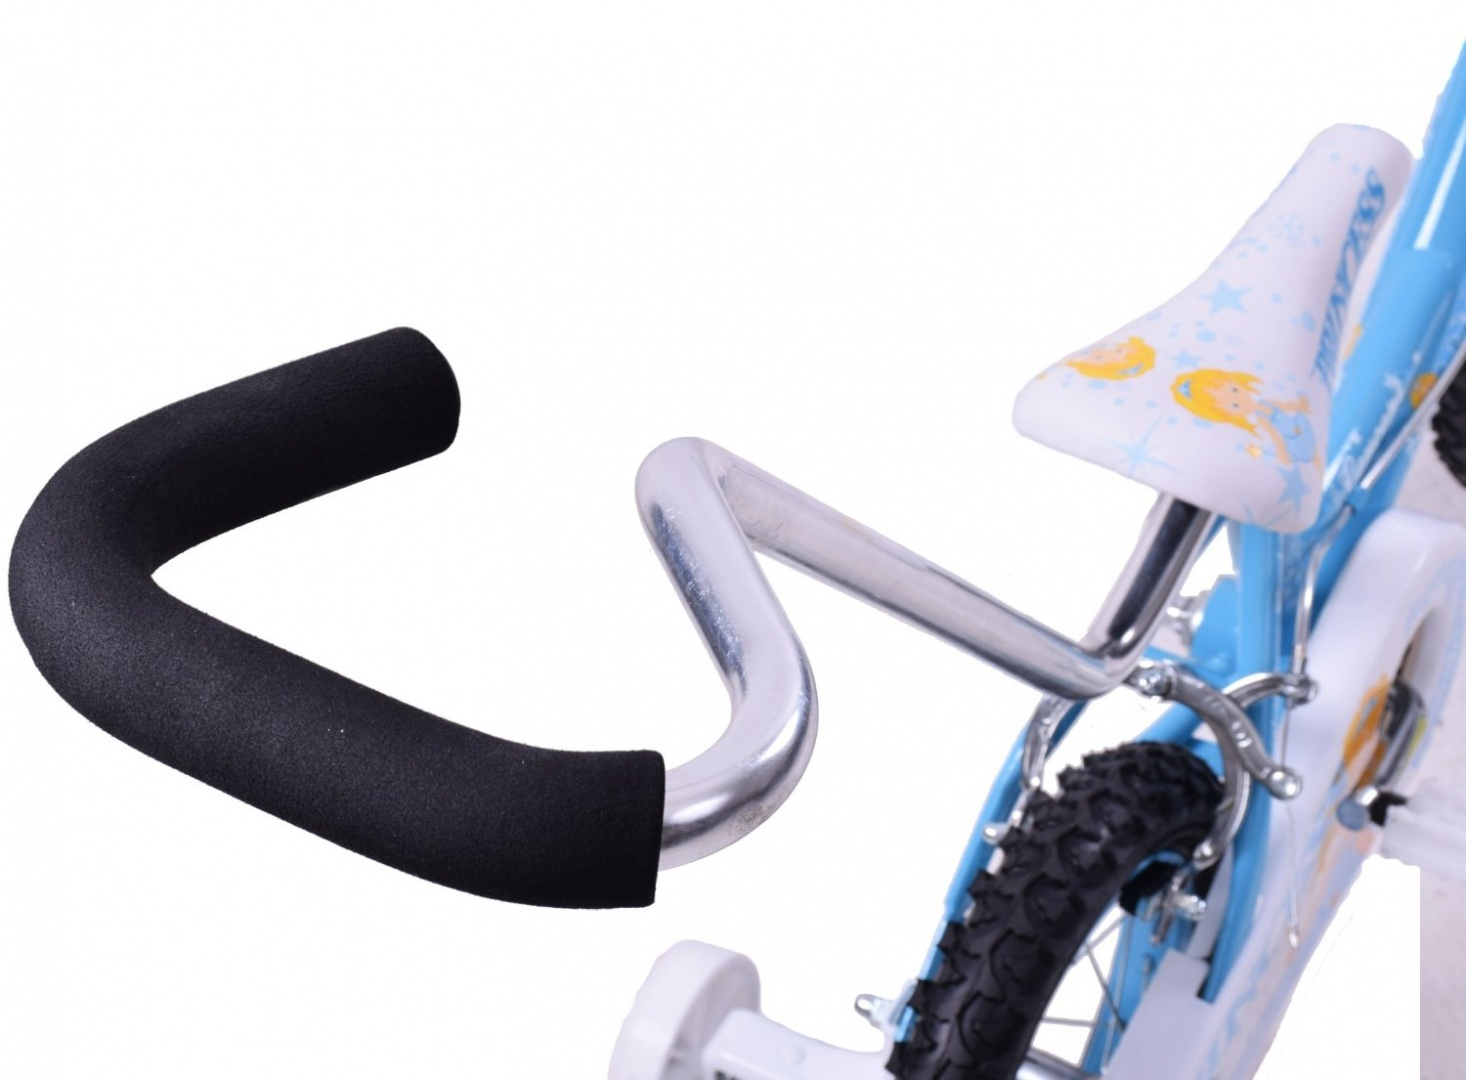 KIDDIES BIKE PARENT POLE FOR SAFETY CONTROL ON ANY CHILDREN'S BIKE